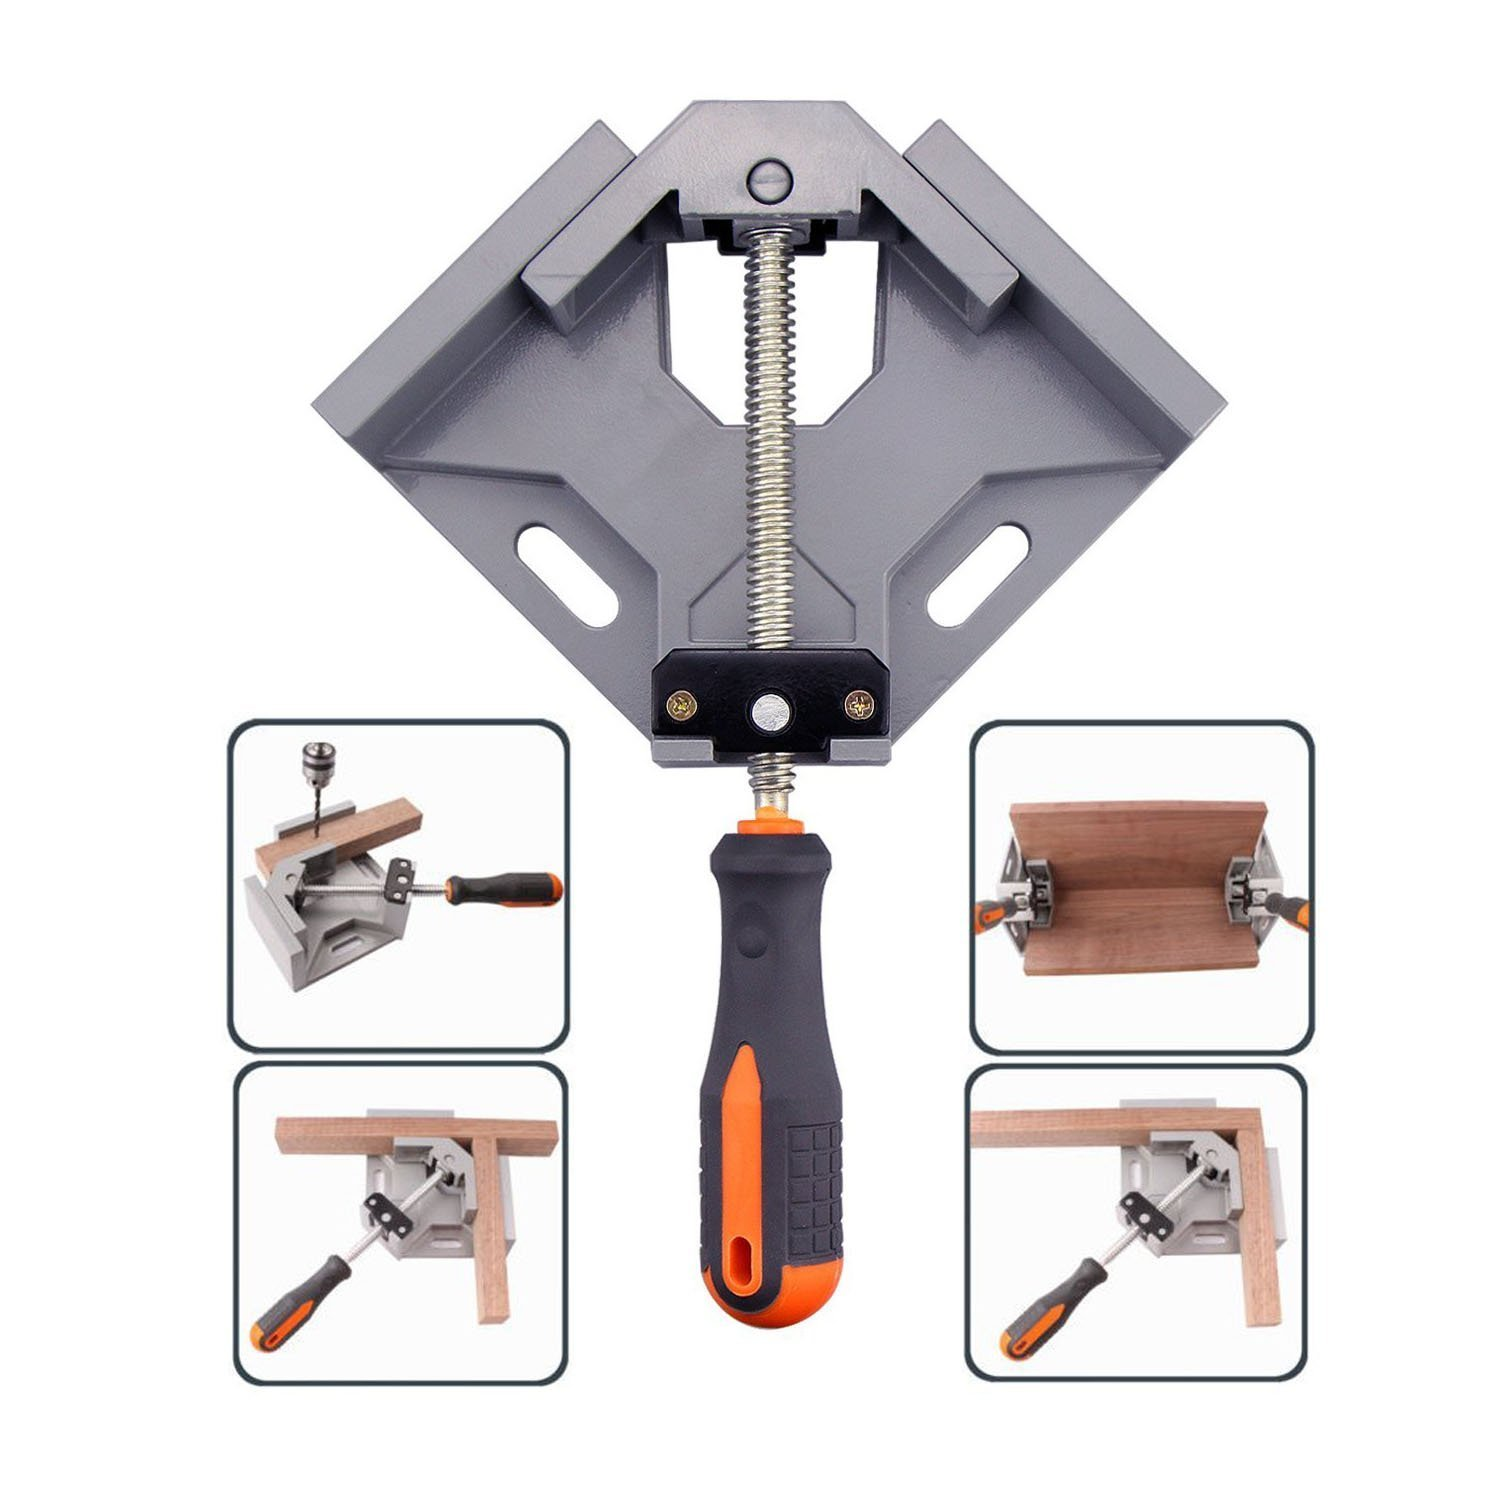 WEICHUAN Woodworking 90 Degree Corner Clamp Right Angle Clamp Right Angle Vise Adjustable Bench Vise Tool by WEICHUAN